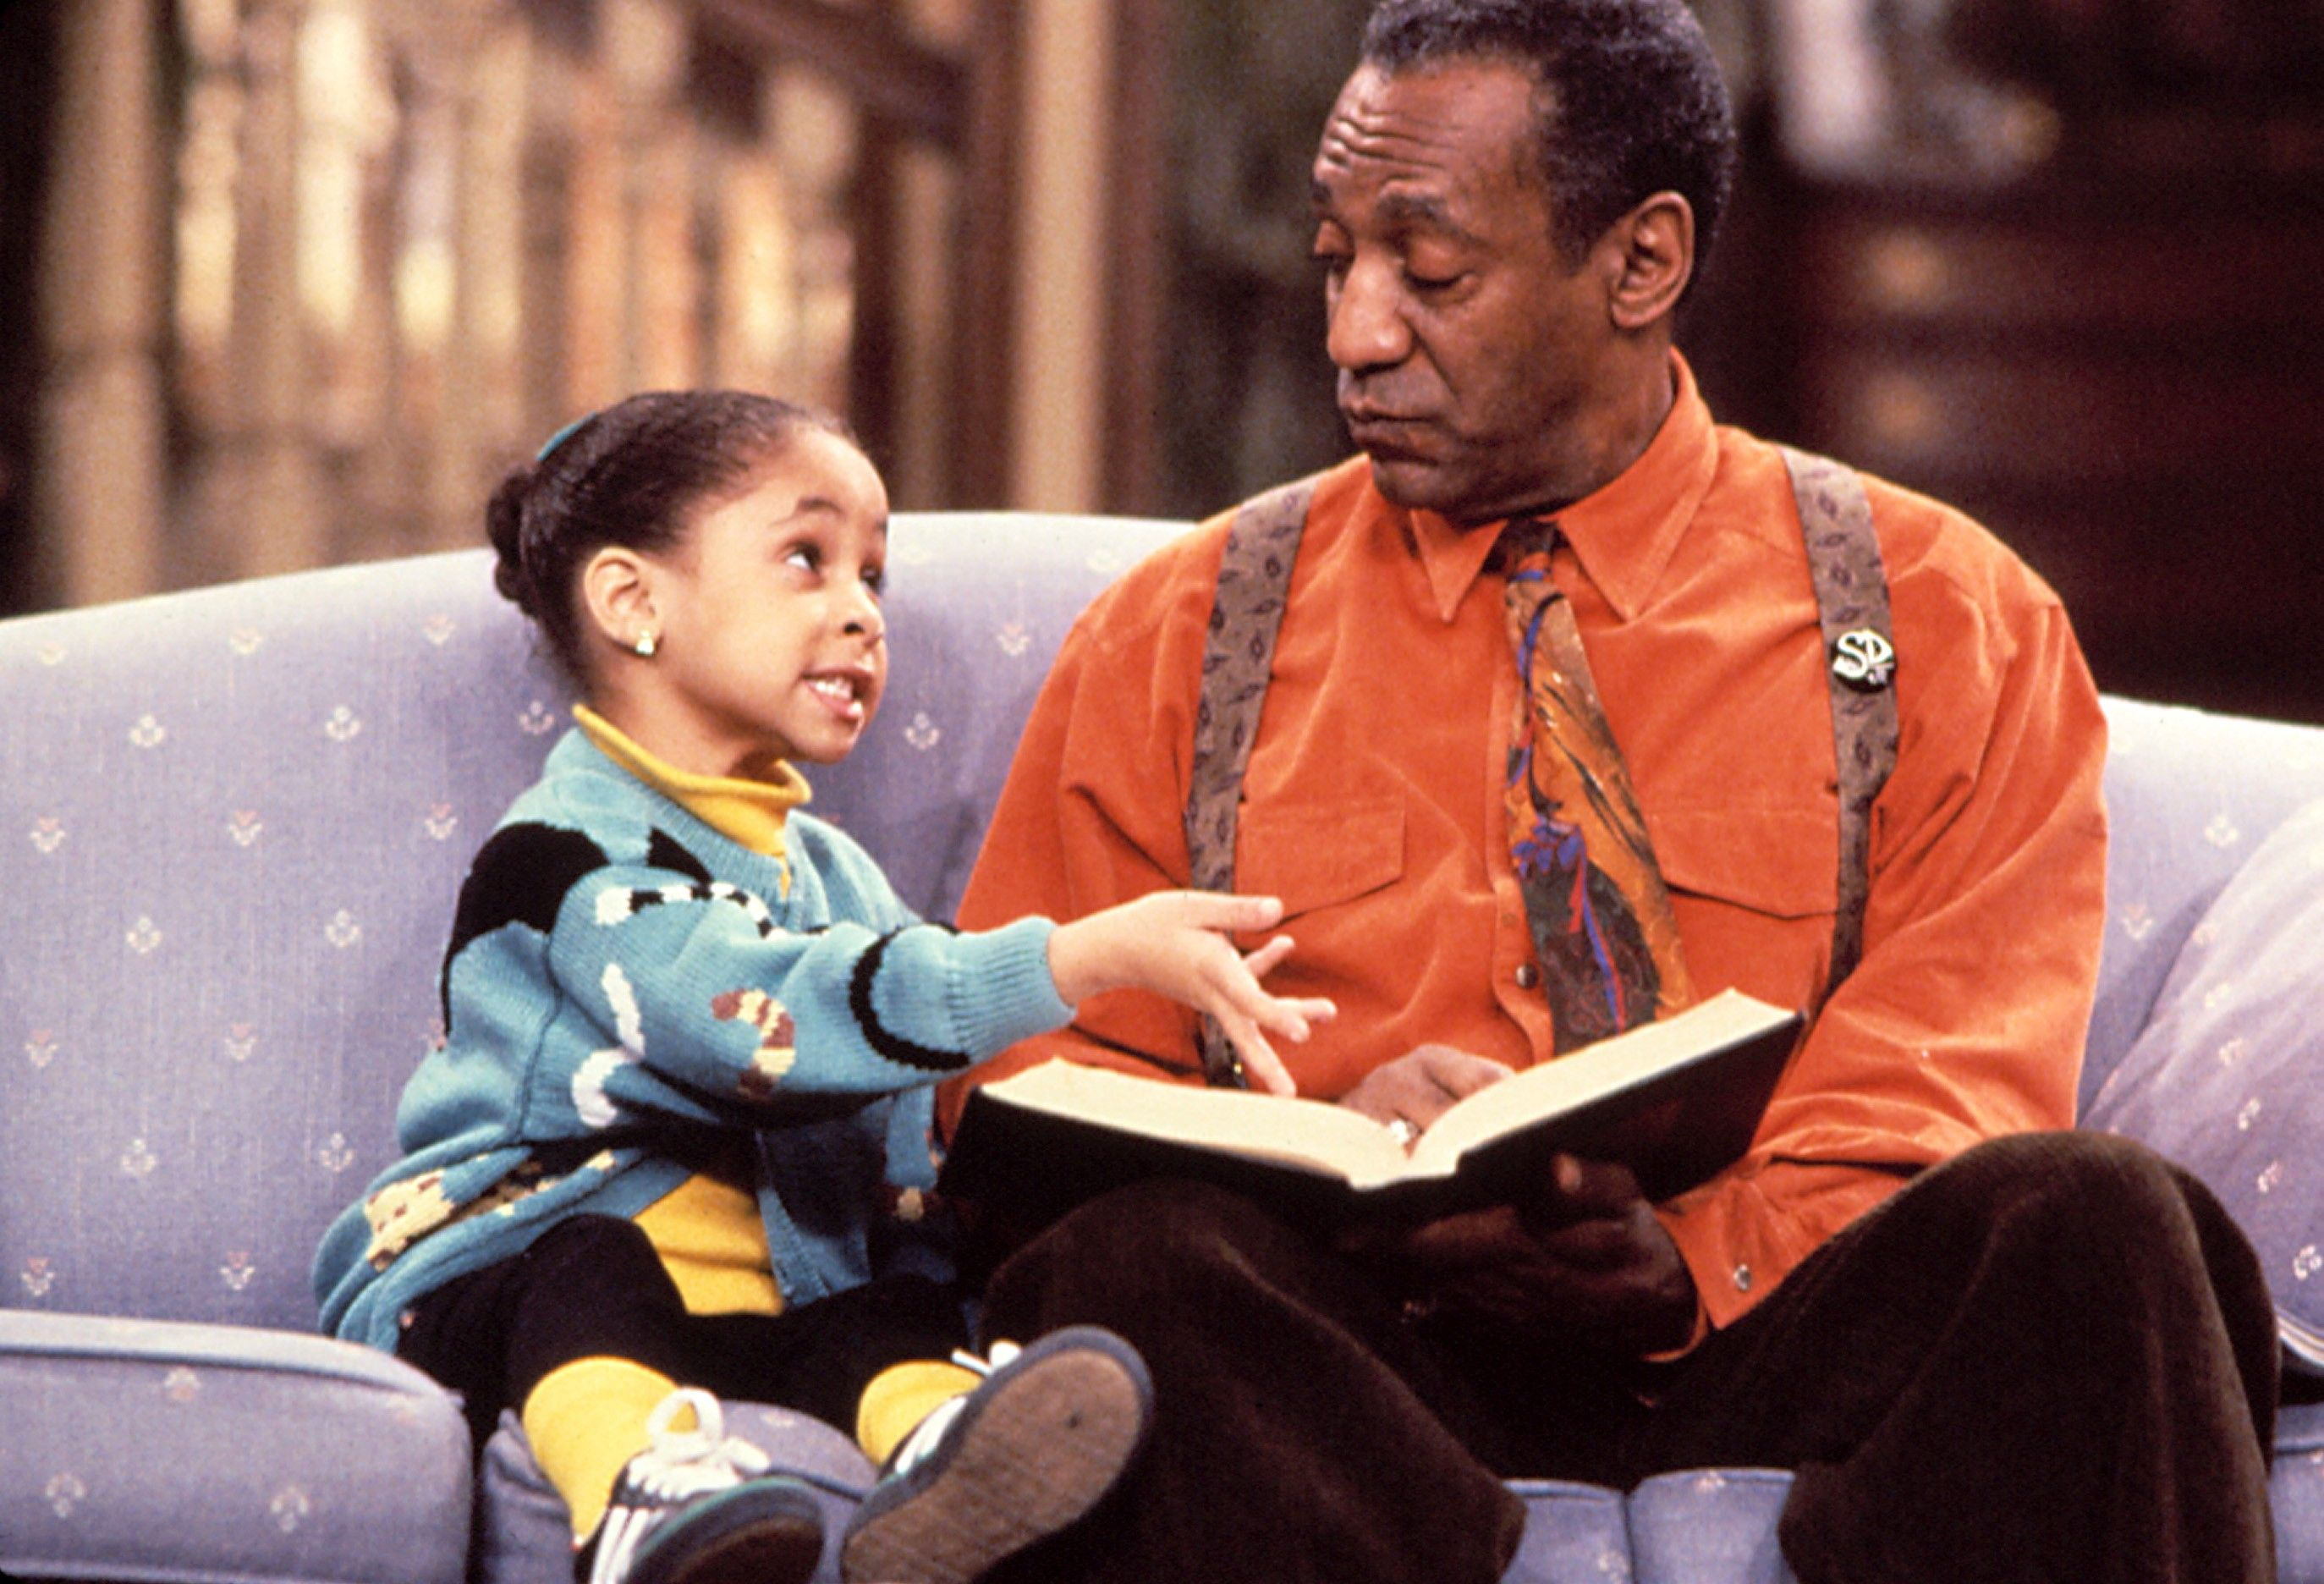 THE COSBY SHOW,  Raven-Symone, Bill Cosby, Yr.6, 1989-1990. (c)Carsey-Werner Co. Courtesy: Everett Collection.